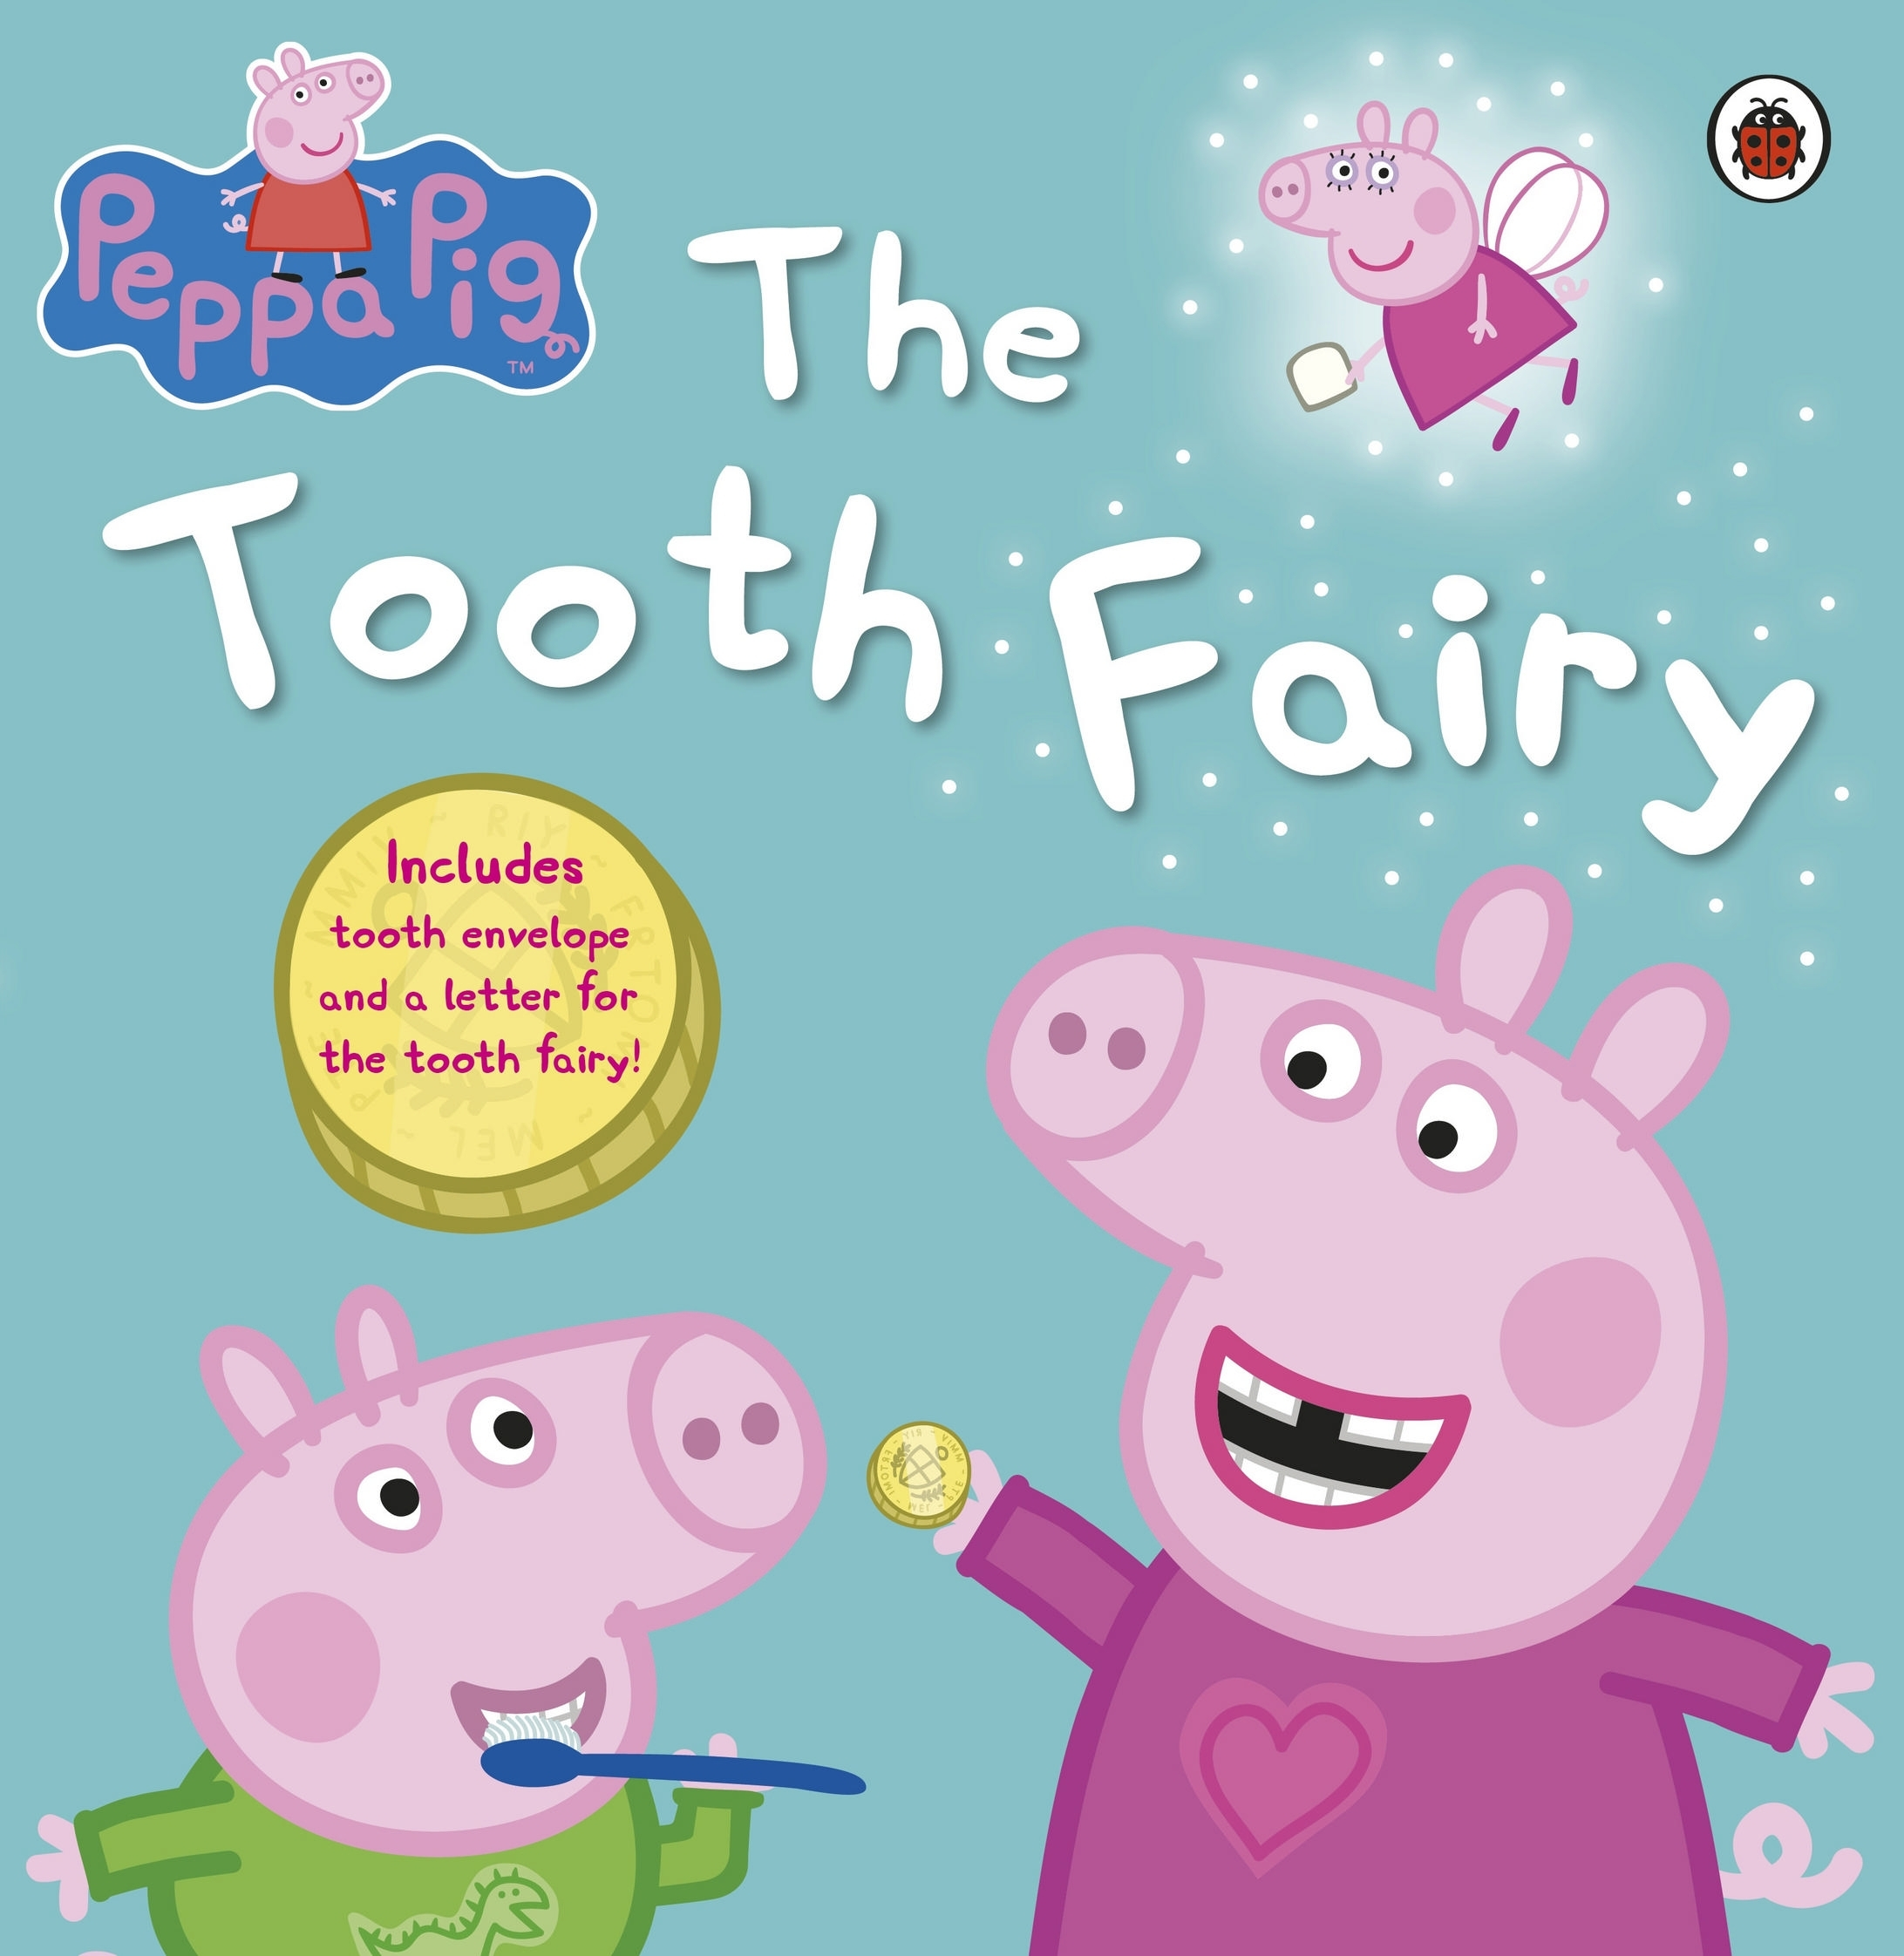 Peppa Pig Tooth Fairy Episode